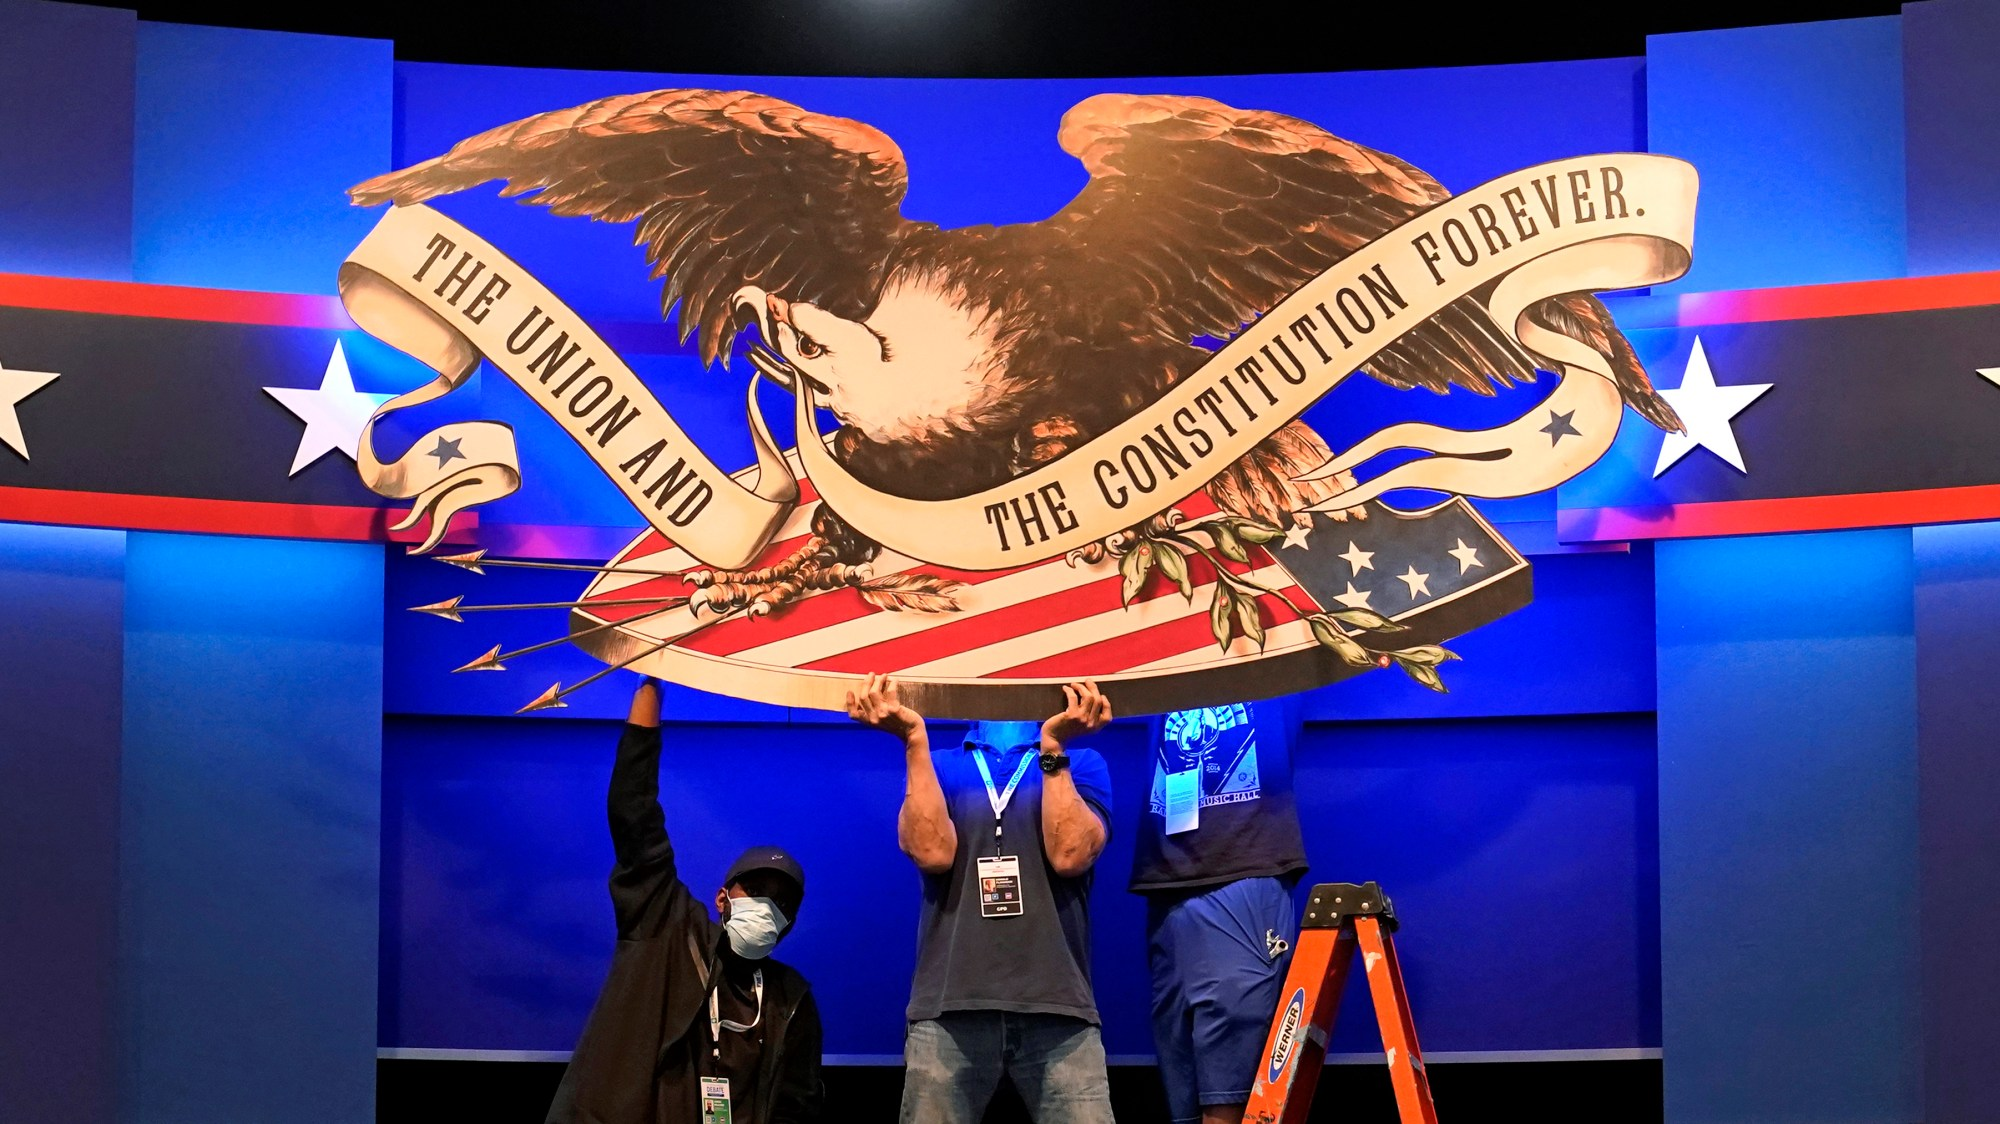 Workers adjust signage as preparations take place for the first Presidential debate in the Sheila and Eric Samson Pavilion, Monday, Sept. 28, 2020, in Cleveland. The first debate between President Donald Trump and Democratic presidential candidate, former Vice President Joe Biden is scheduled to take place Tuesday, Sept. 29. (AP Photo/Patrick Semansky)